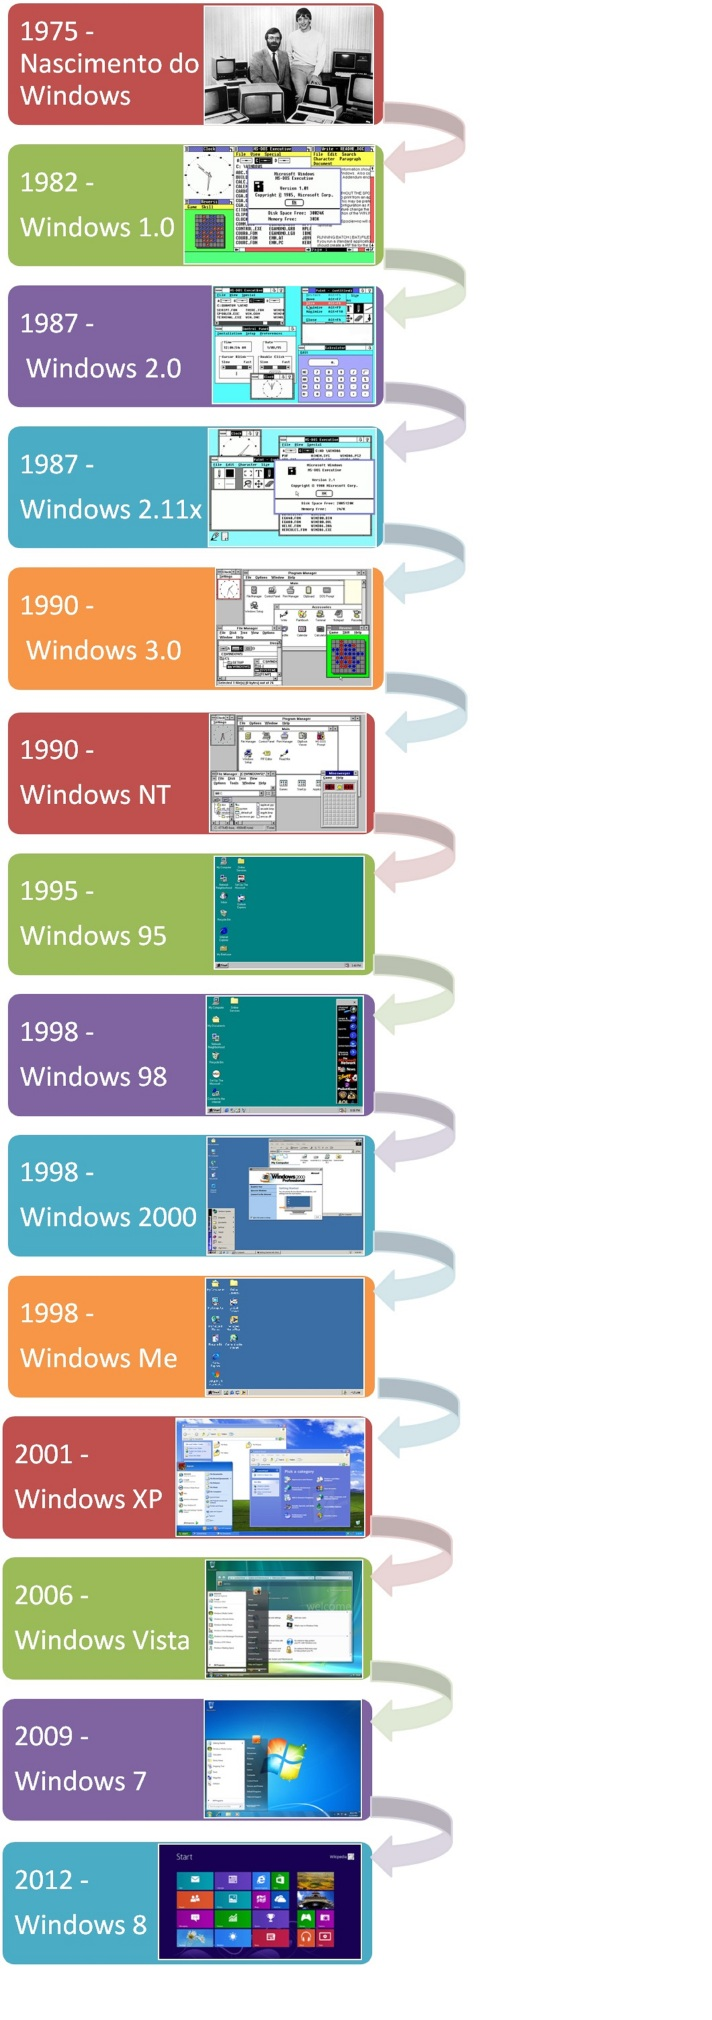 Evoluçao do windows (2)